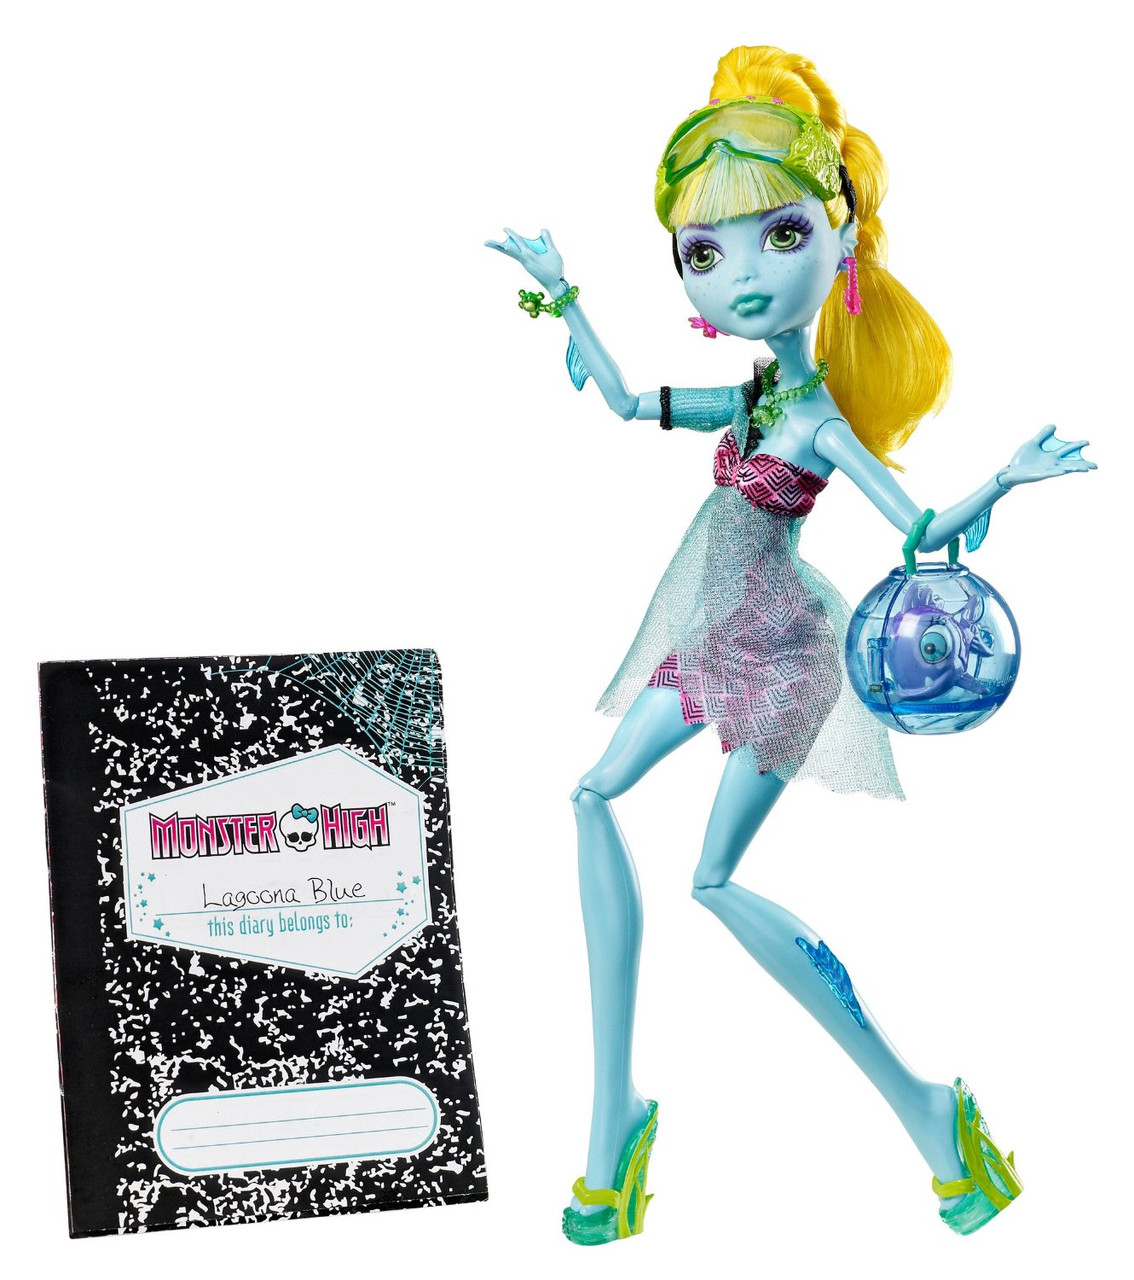 Кукла Монтер Хай  Лагуна Блю серия 13 желаний Monster High 13 Wishes Lagoona Blue, Киев